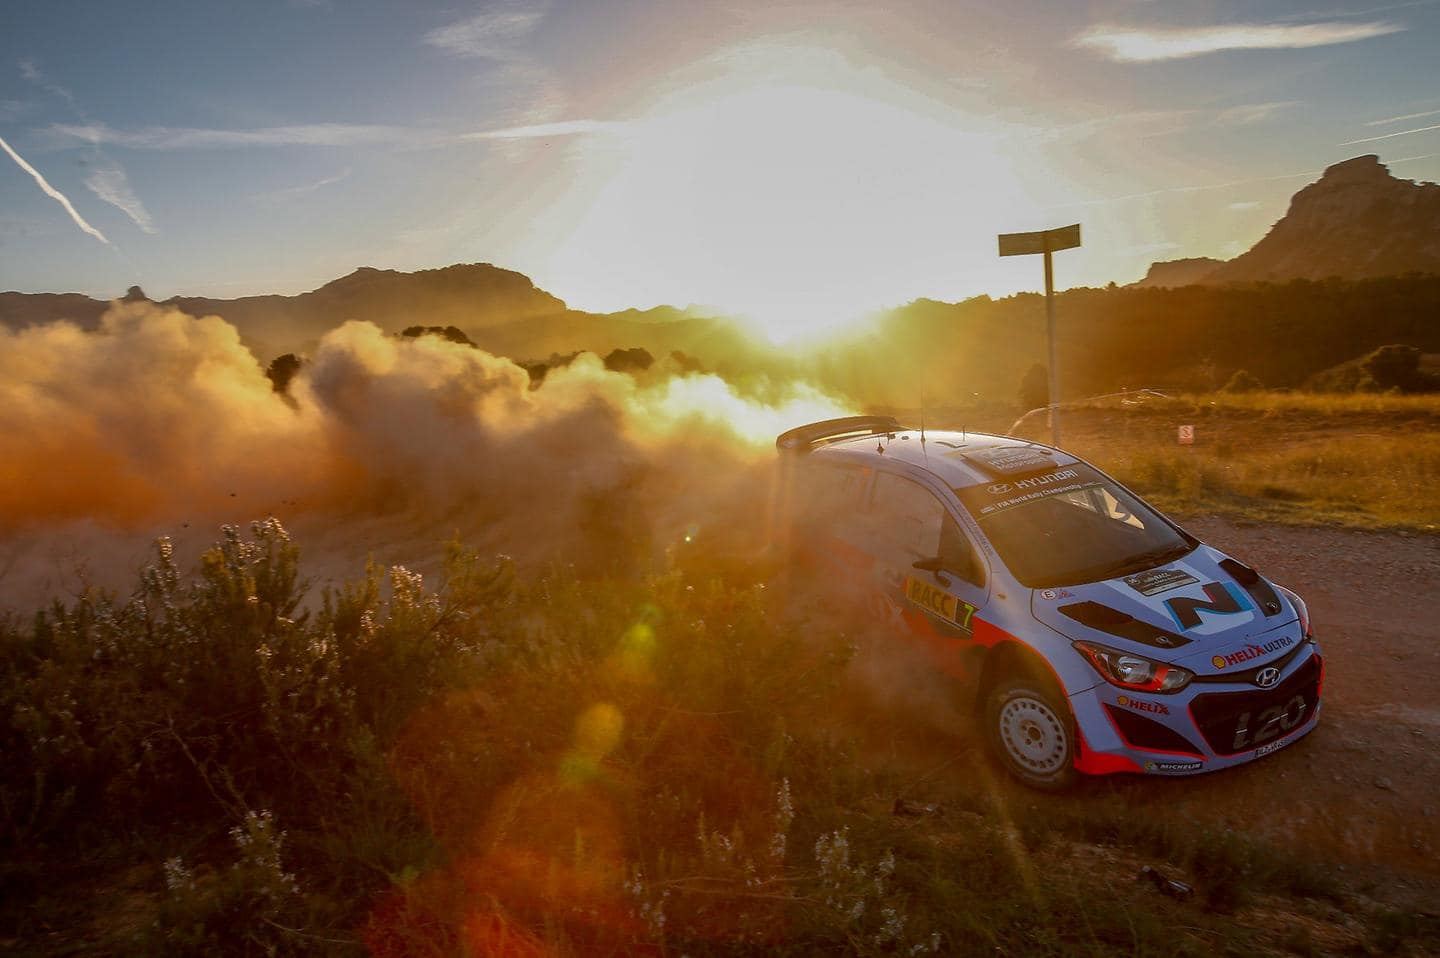 Hyundai Motor UK is Once Again The Official Car Partner to Wales Rally GB